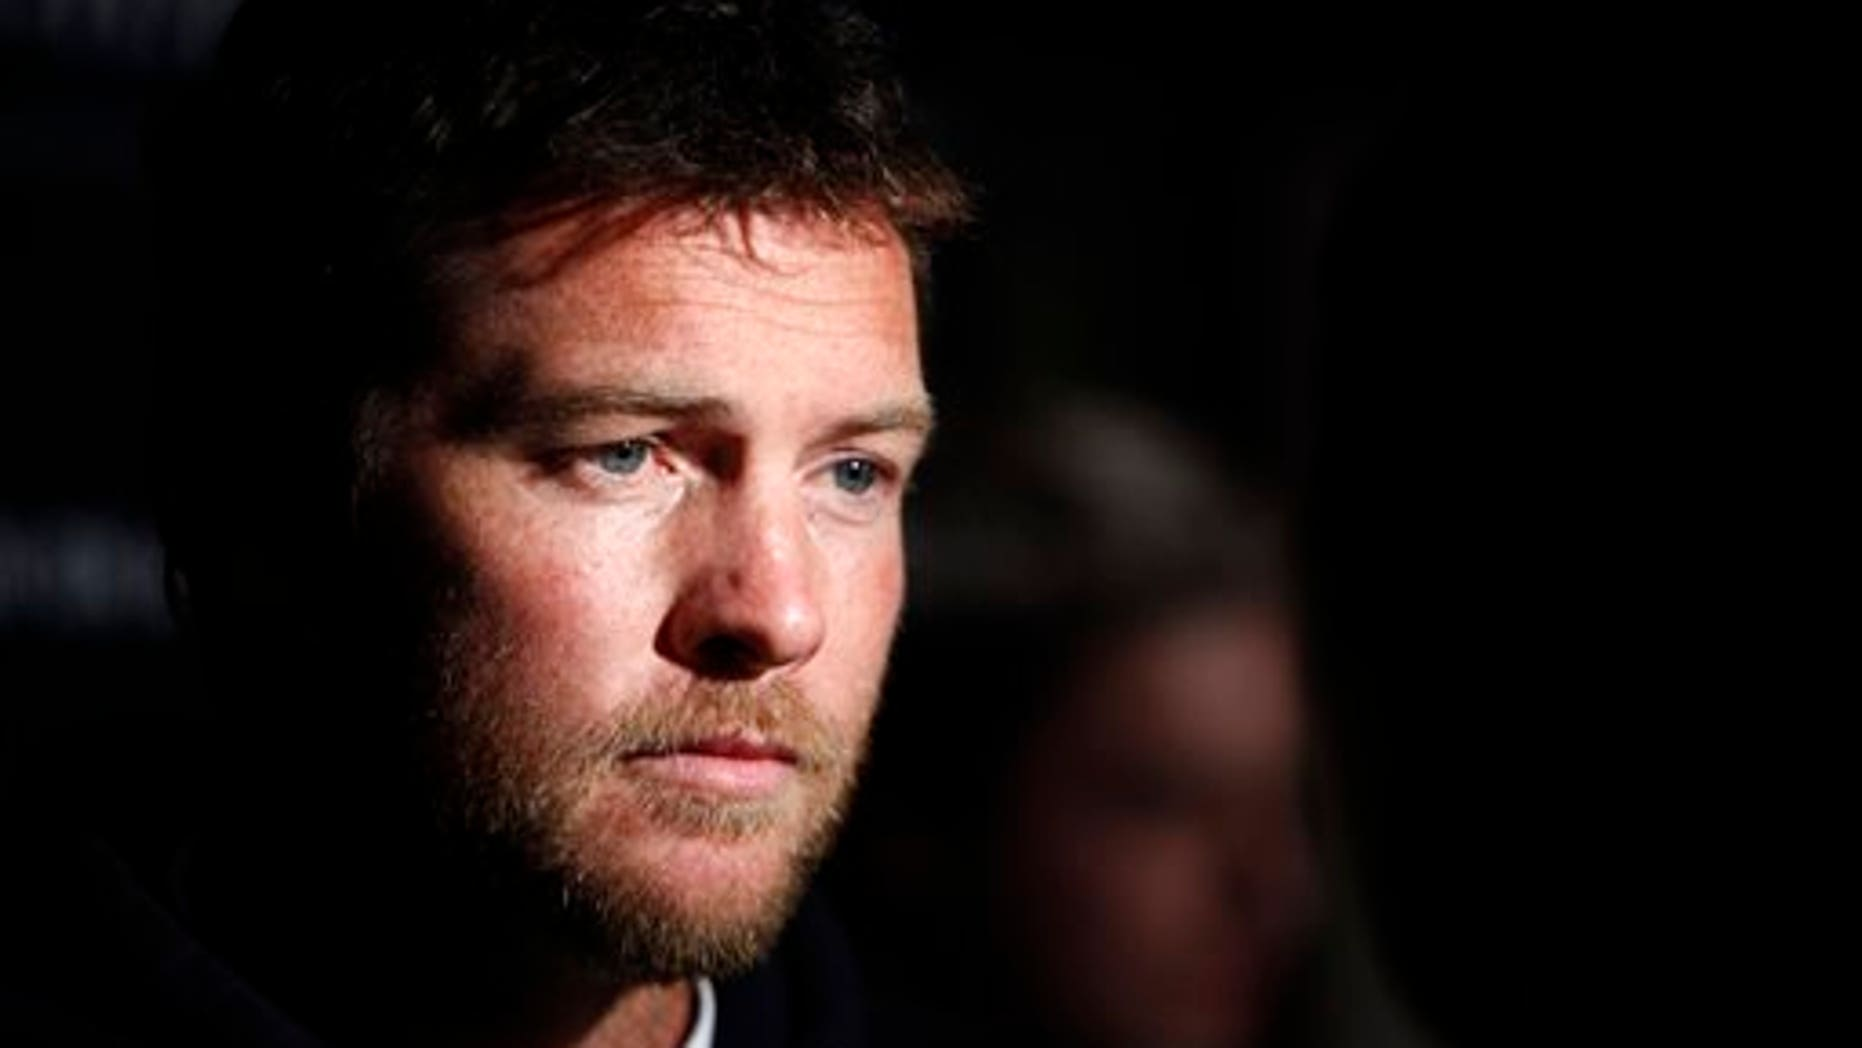 "FILE - In this Jan. 19, 2012 file photo, Actor Sam Worthington attends the Cinema Society premiere of ""Man on a Ledge"" in New York. Police say Worthington has been arrested Sunday, Feb. 23, 2014, in New York City for punching a photographer after the man kicked Worthington's girlfriend in the shin. The Australian actor was released on a desk appearance ticket and is due back in court on Feb. 26. (AP Photo/Peter Kramer, File)"